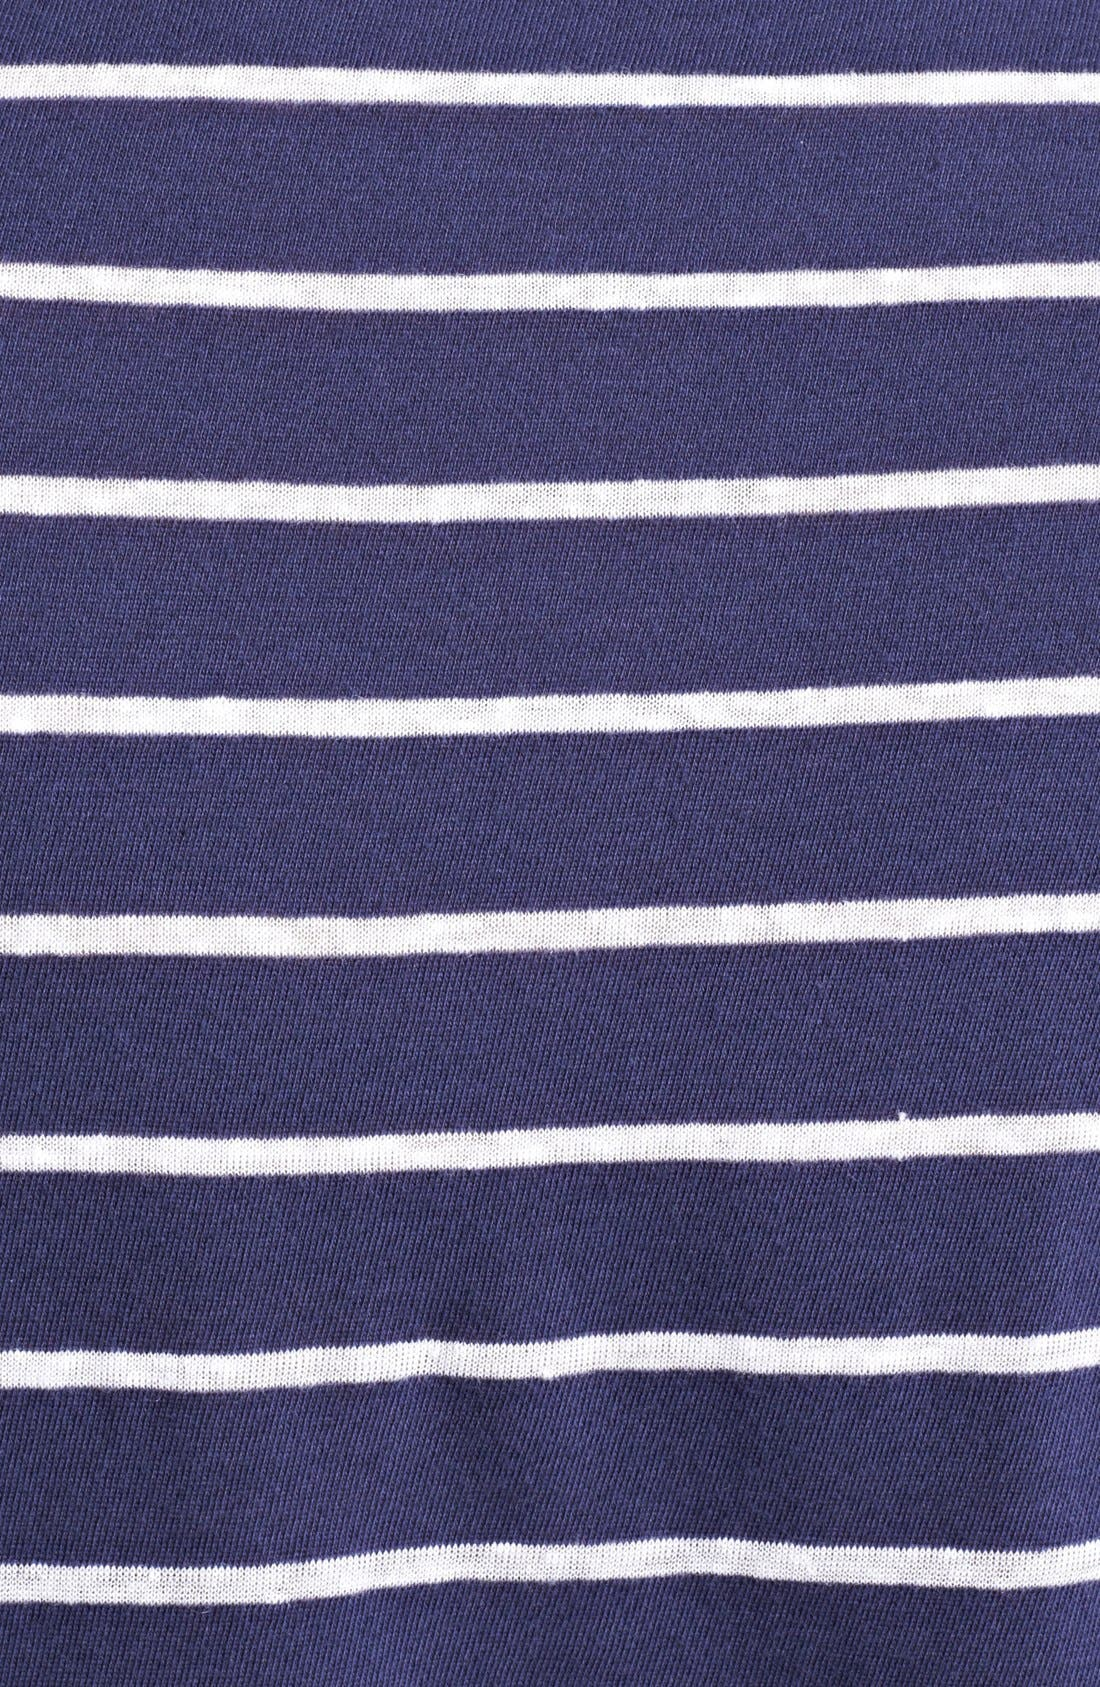 Alternate Image 3  - Michael Bastian Stripe Jersey Polo